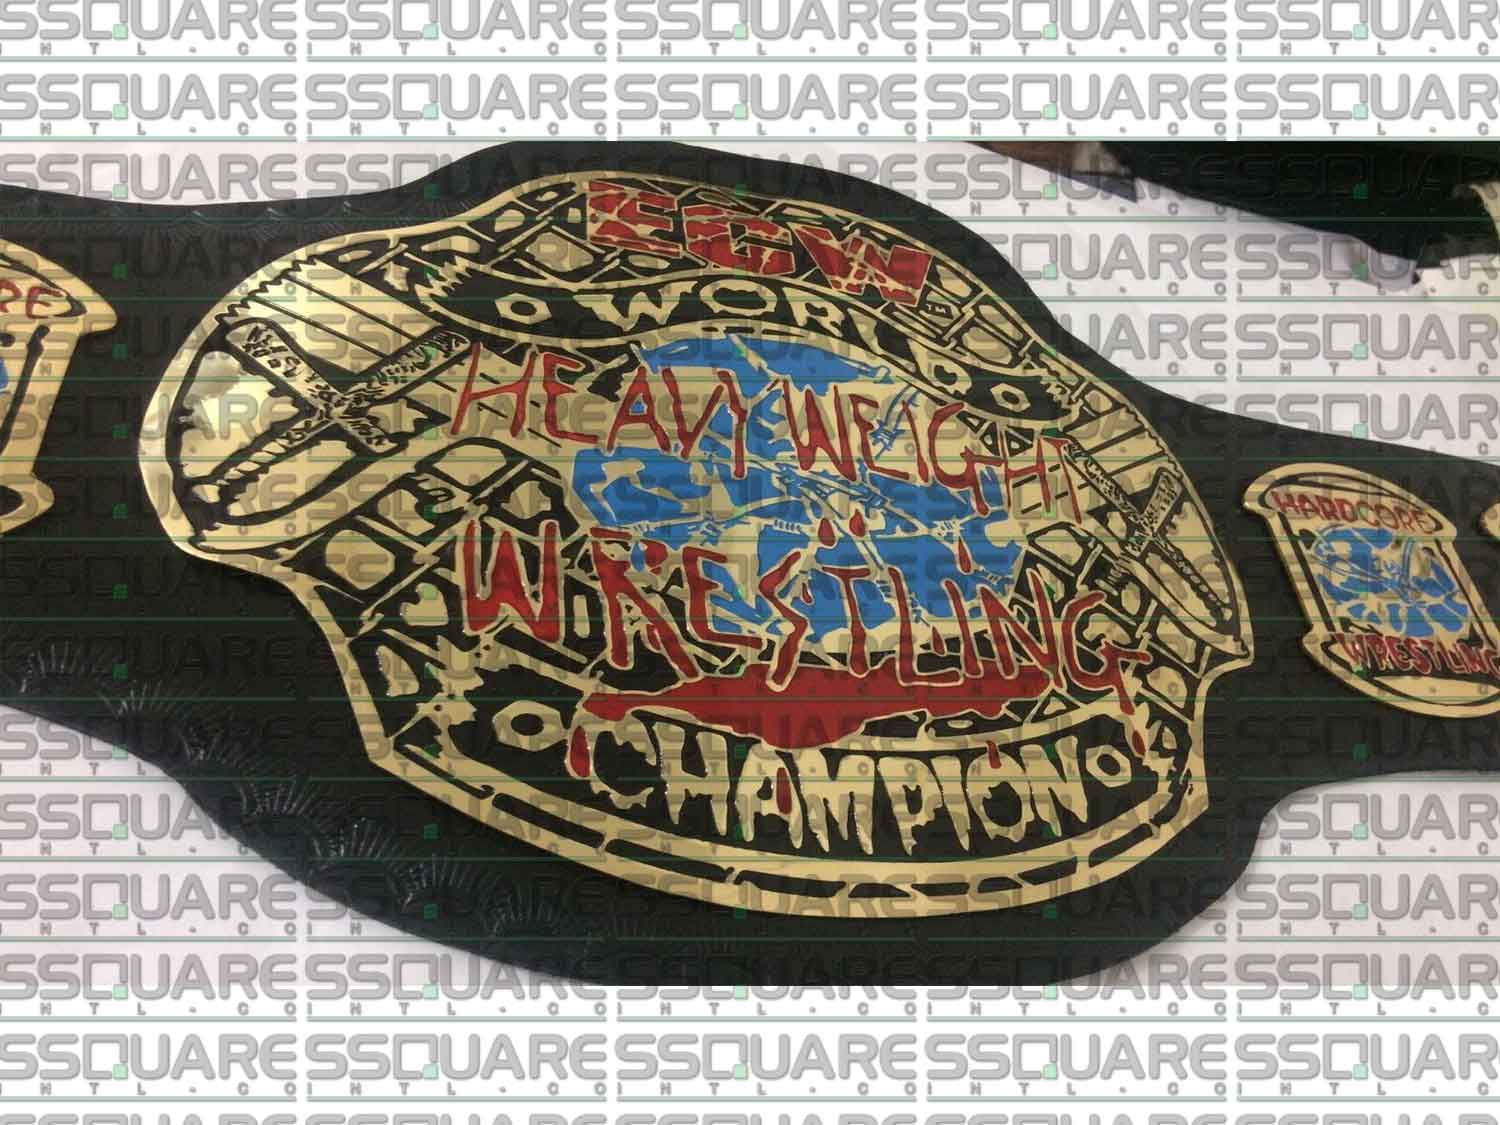 ECW World Heavyweight Wrestling Champion replica belt